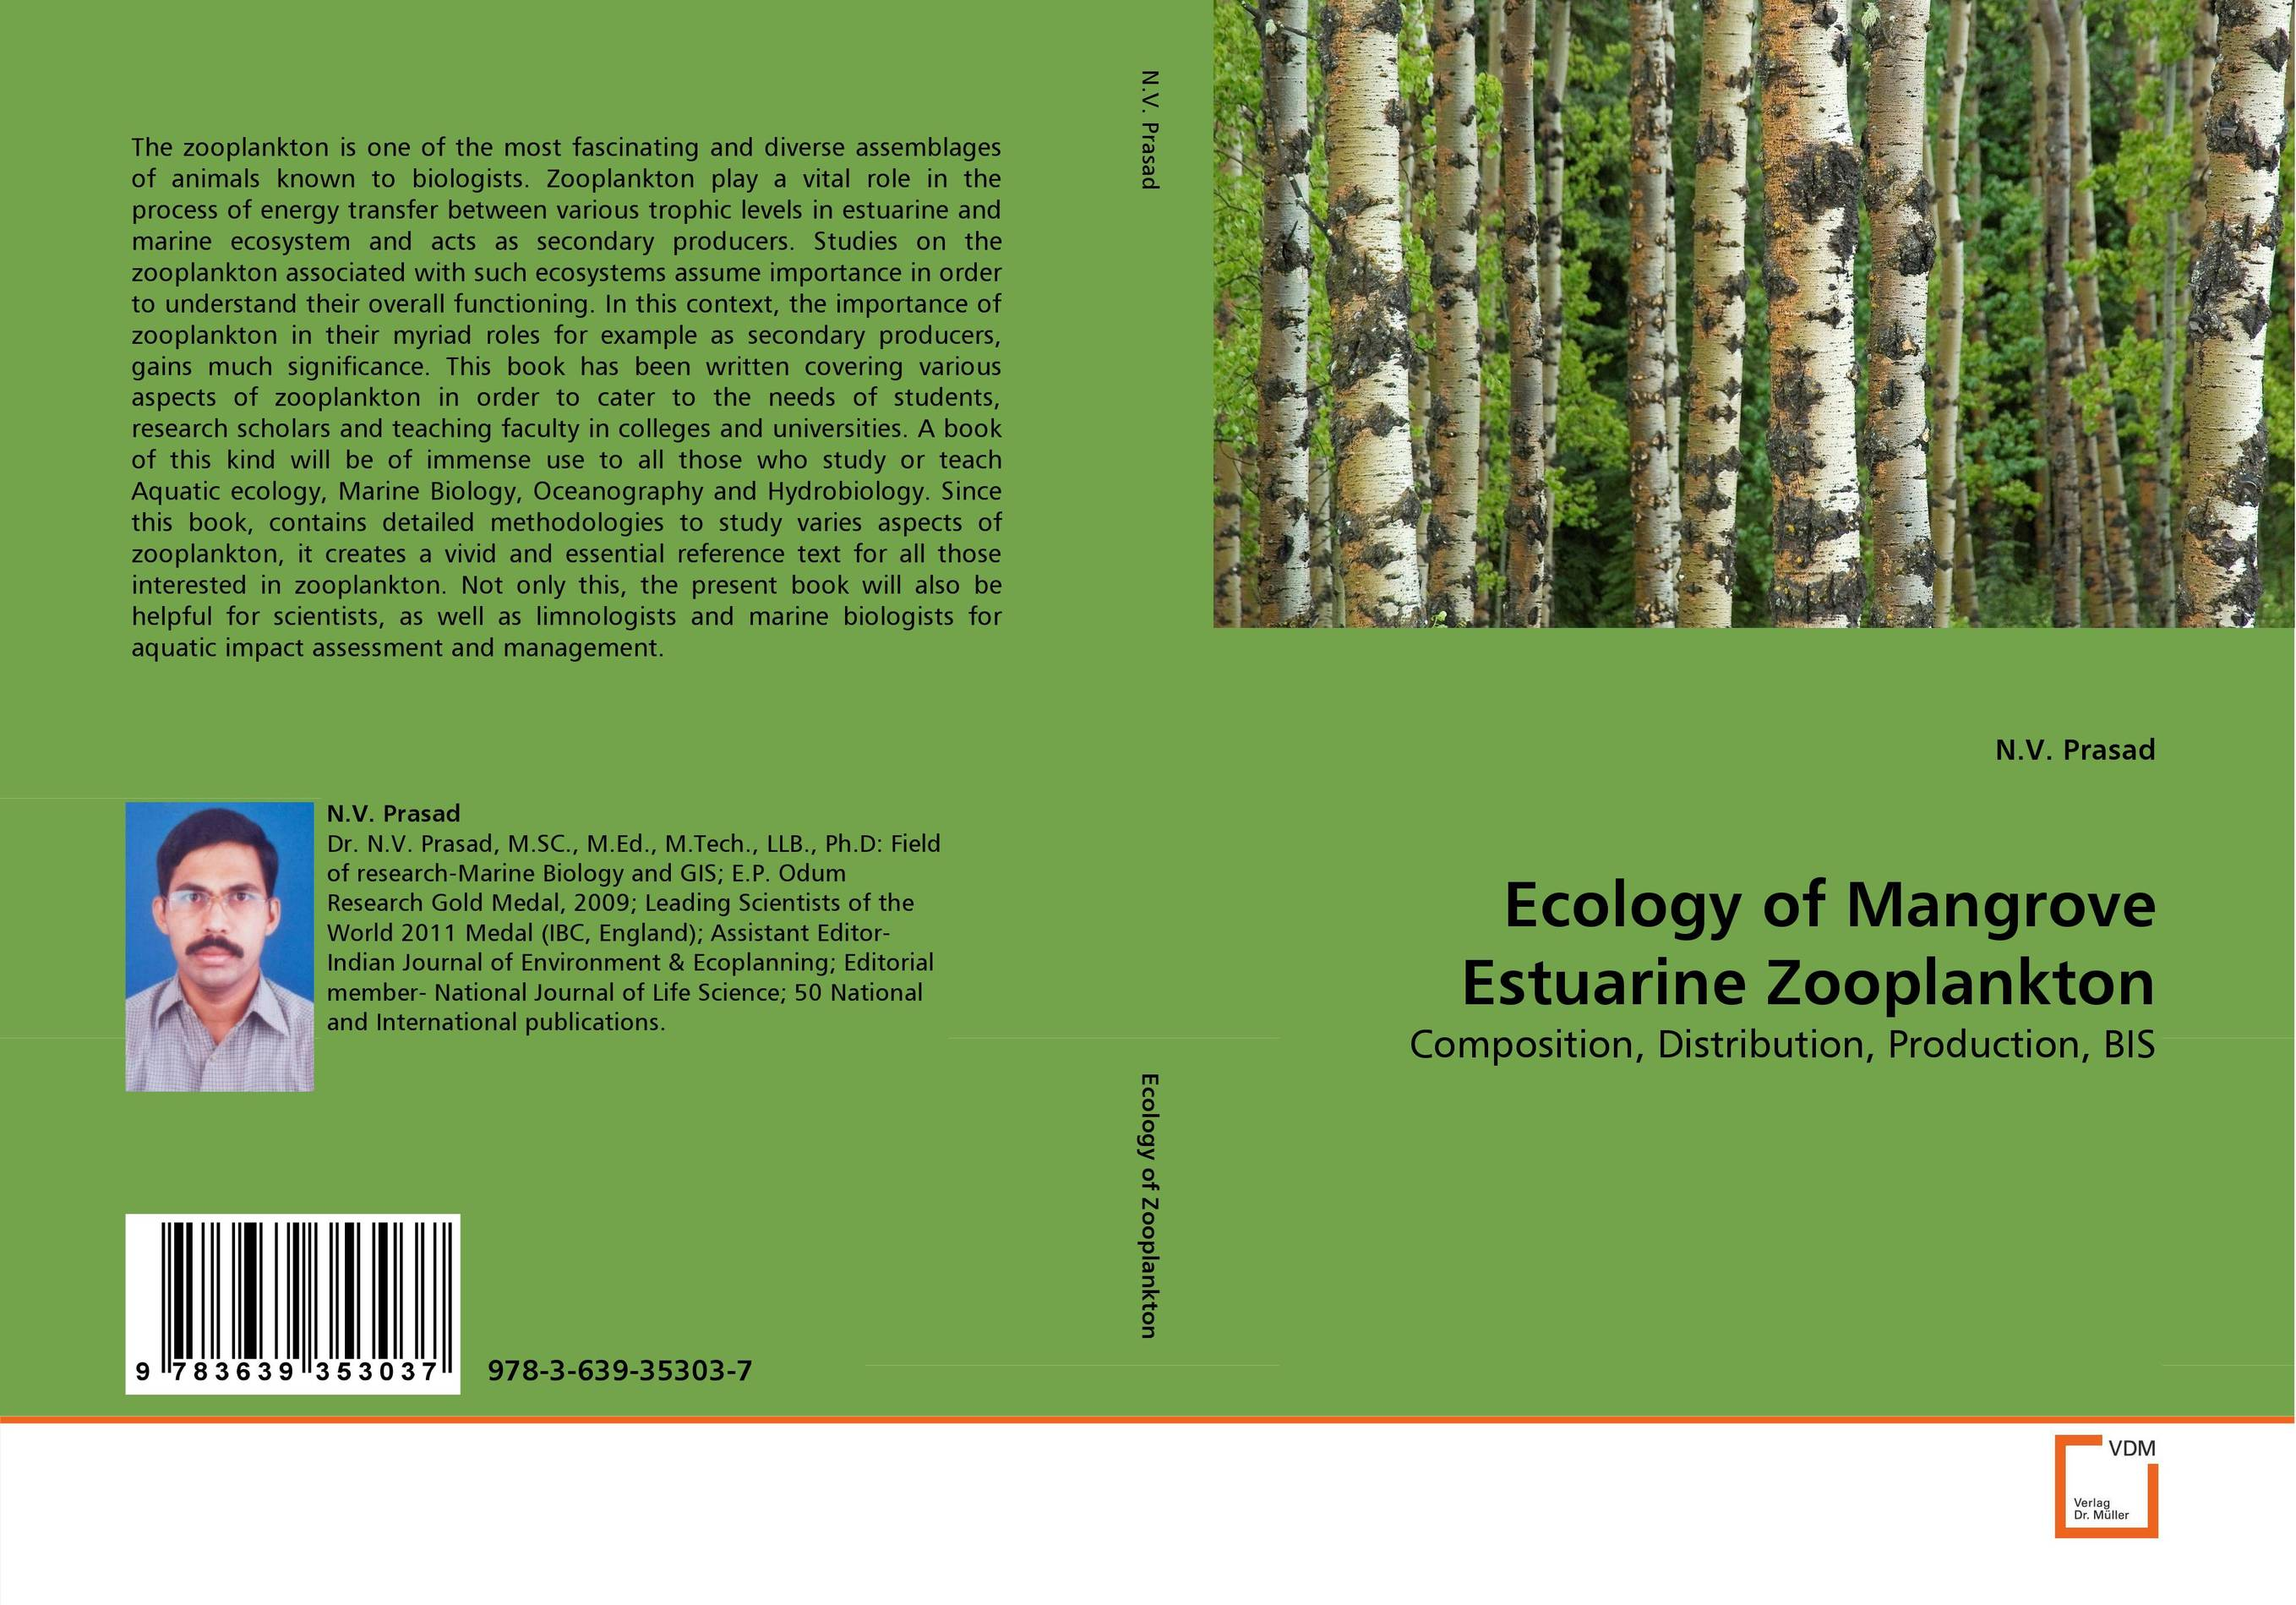 Ecology of Mangrove Estuarine Zooplankton